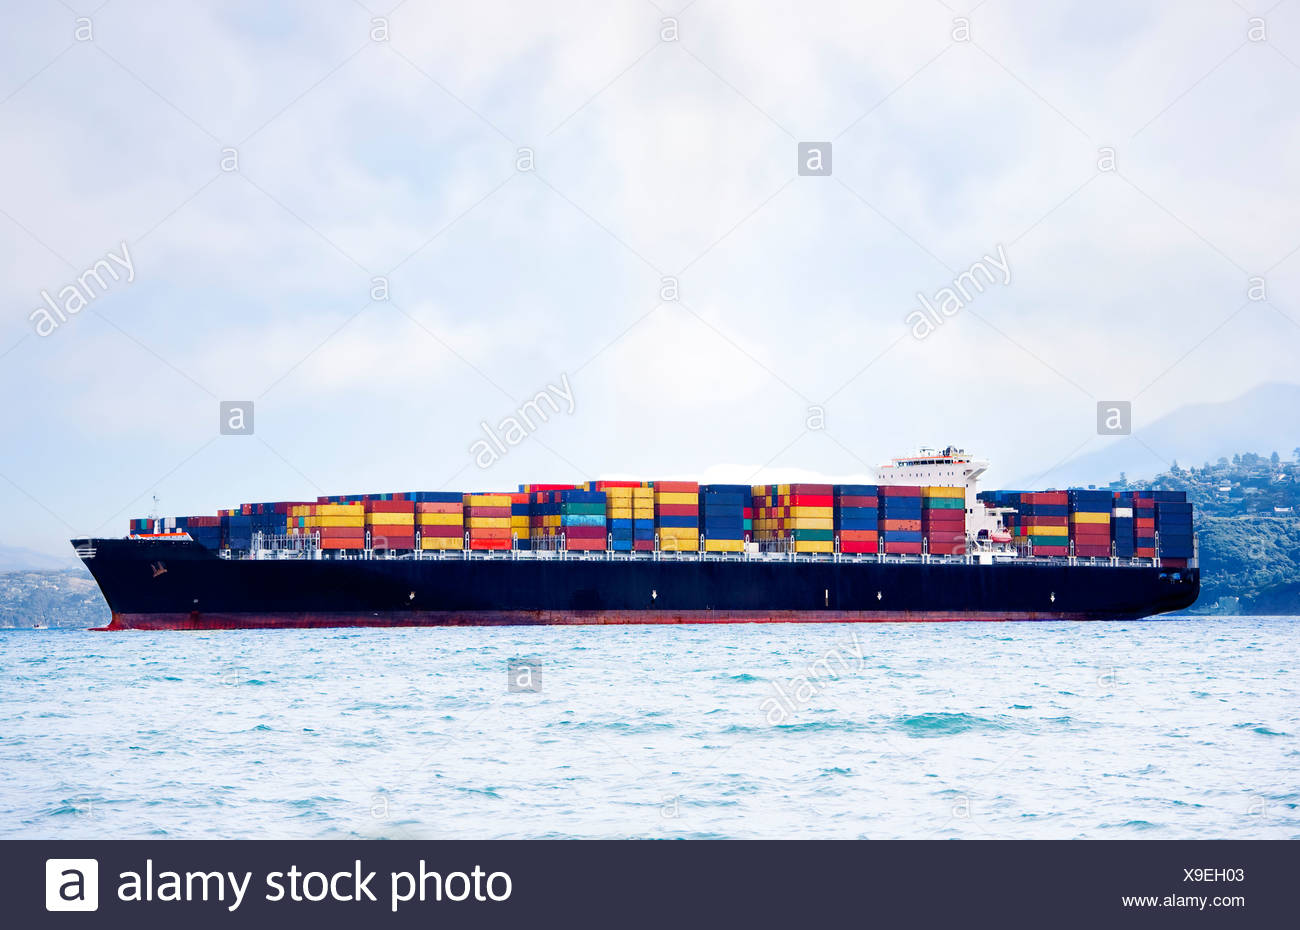 Large cargo ship in water carrying colorful shipping containers - Stock Image